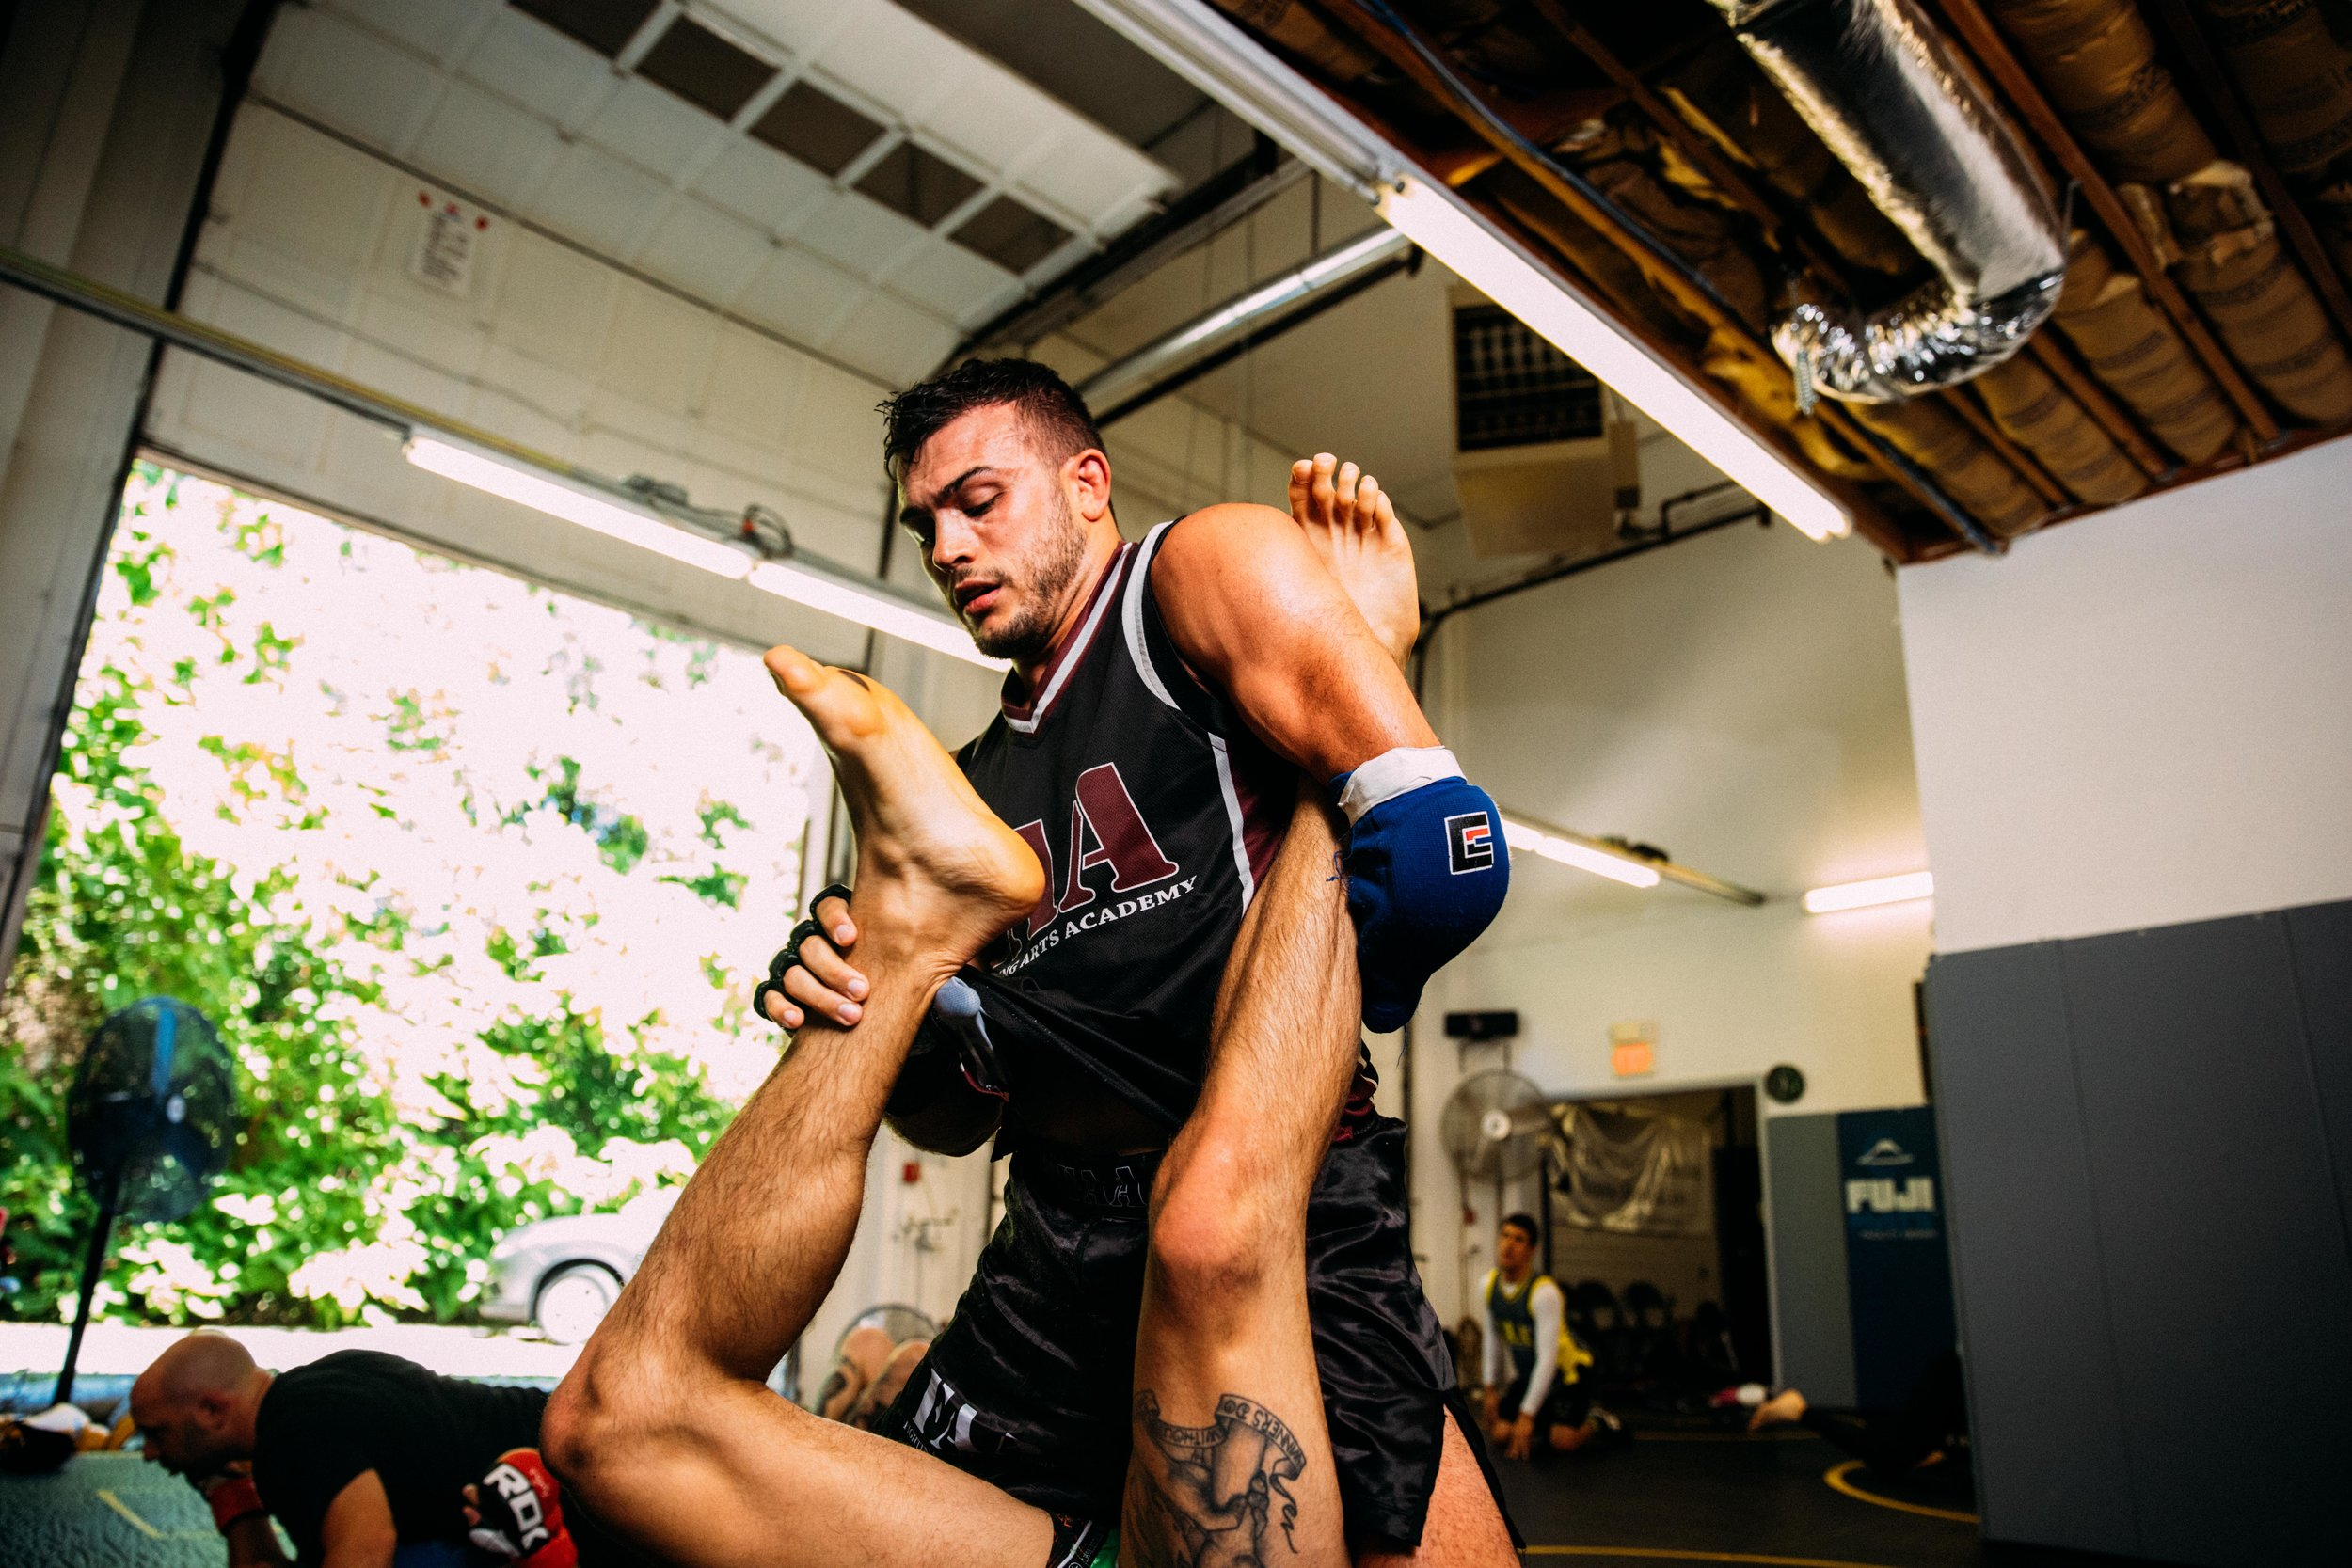 7-18-18_FightingArtsAcademy_NickNewell_DanielMartinez-27.jpg